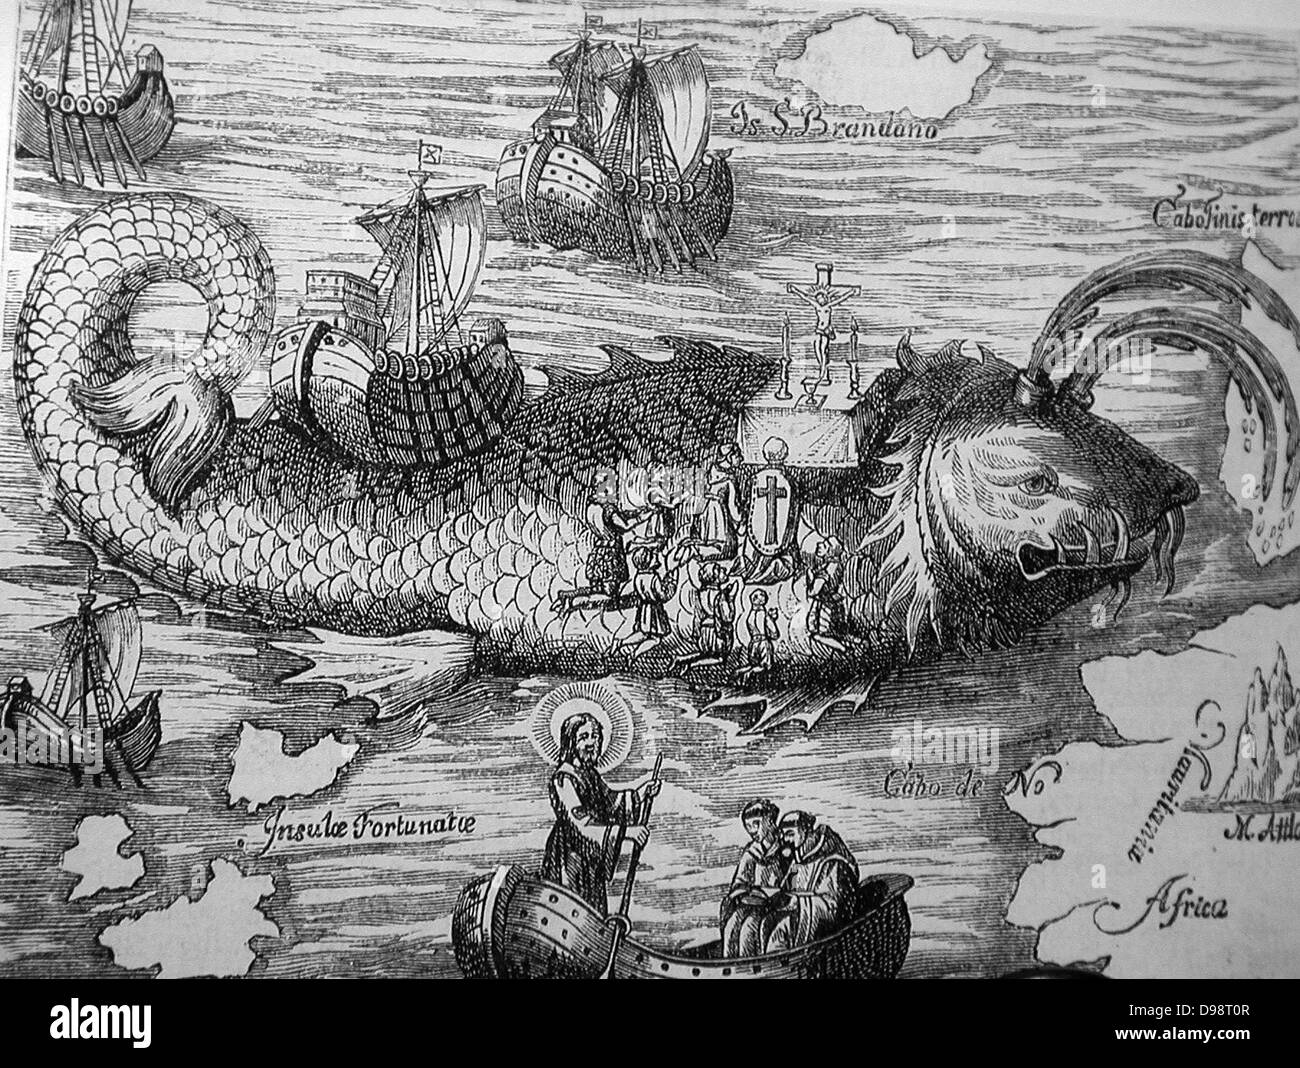 St Brendan and the whale from a 16th century engraving. Saint Brendan of Clonfert or Bréanainn of Clonfert - Stock Image